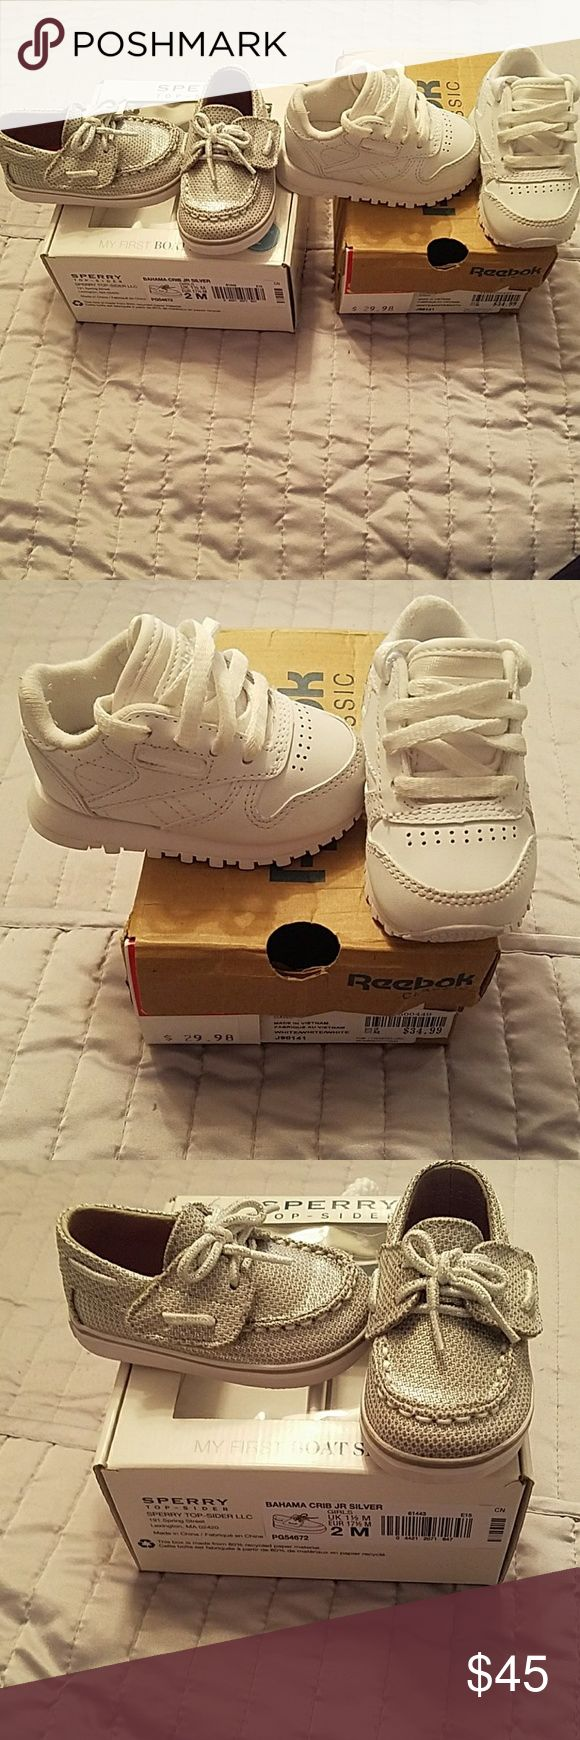 Shoe bundle Sperry top-sider silver size 2 Reebok white size 2 both like new Sperry Shoes Sneakers